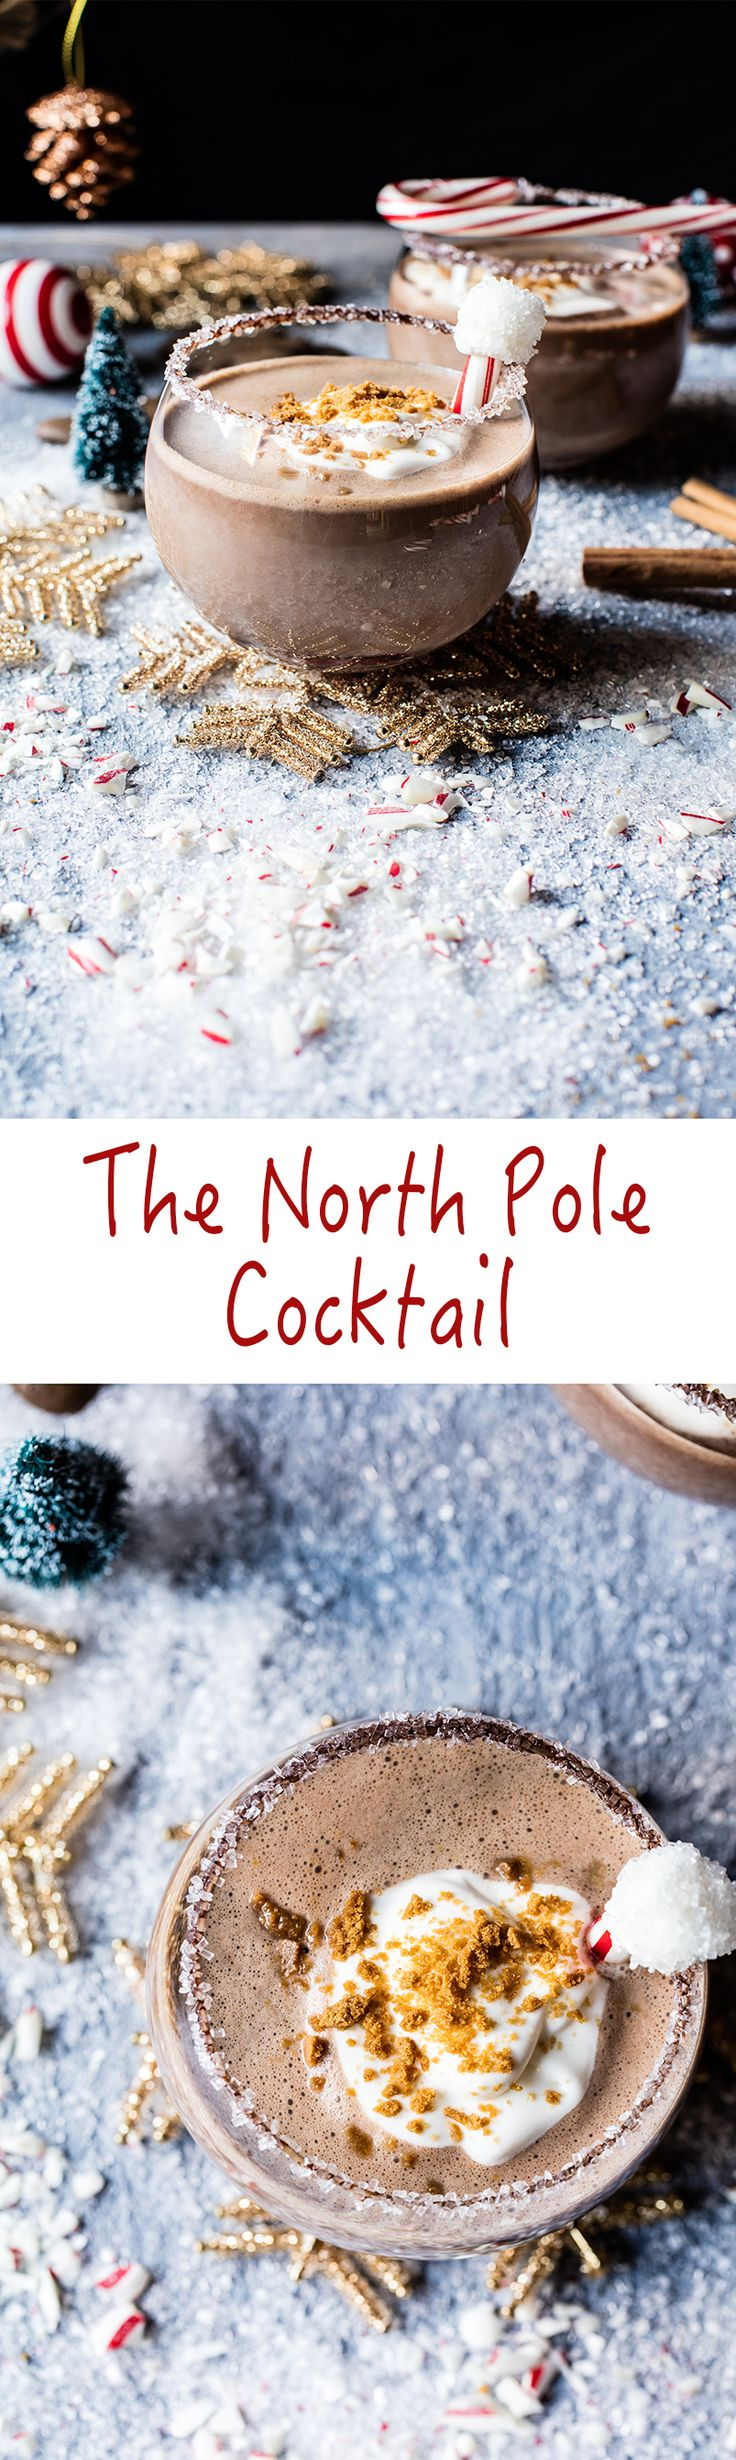 The North Pole Cocktail | halfbakedharvest.com @hbharvest